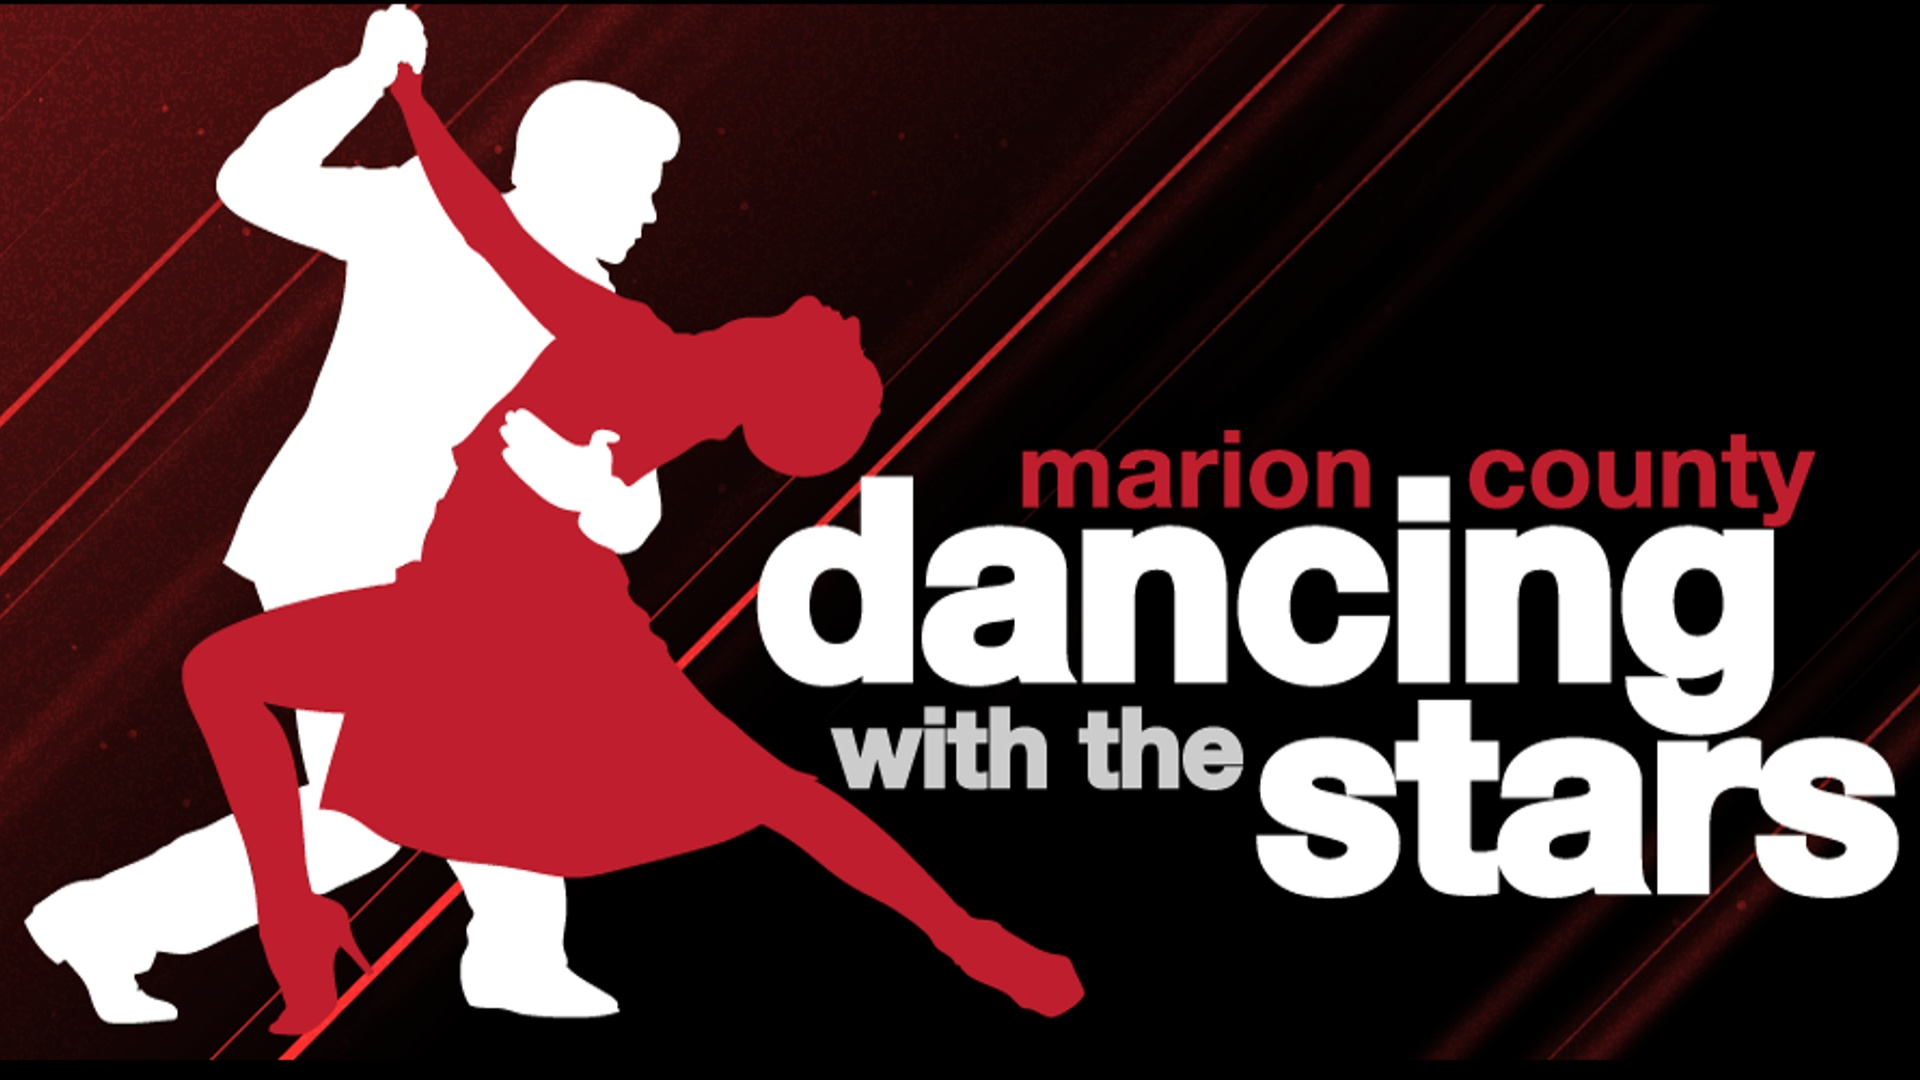 Marion County Dancing with the Stars_1559870335393.jpg.jpg